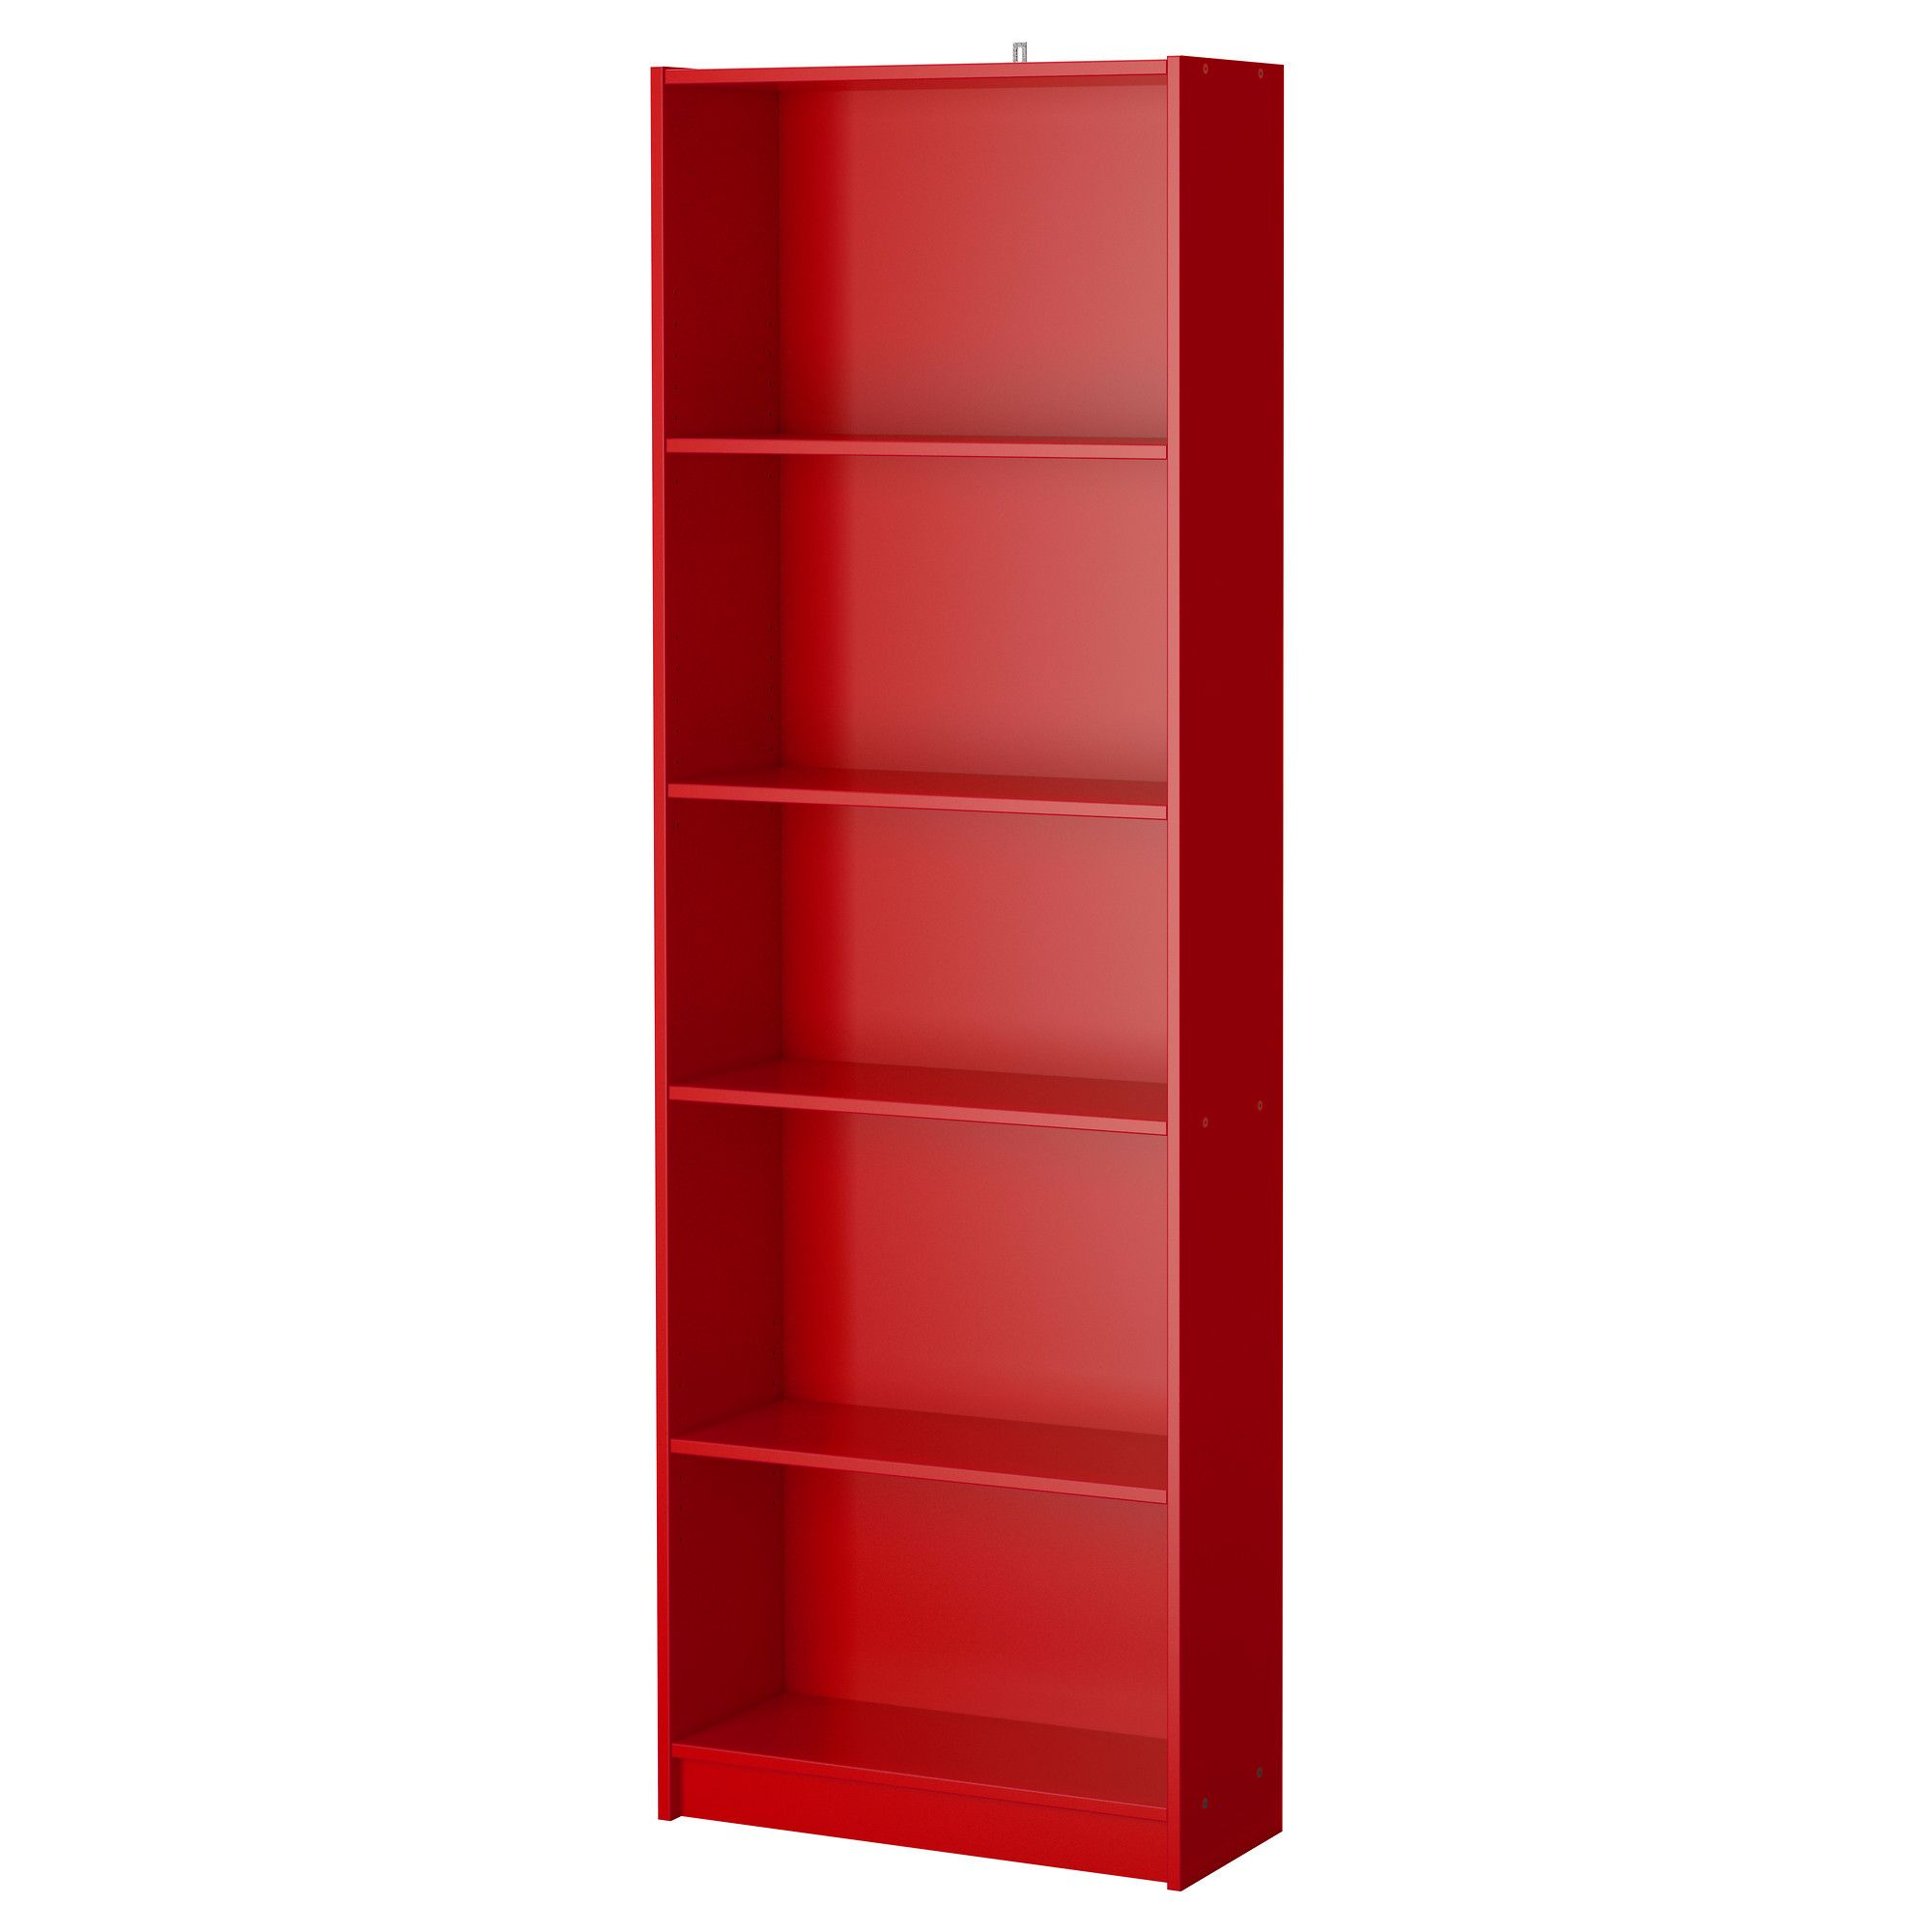 ikea finnby biblioth que rouge quatre tablettes hauteur r glable adapter selon vos. Black Bedroom Furniture Sets. Home Design Ideas